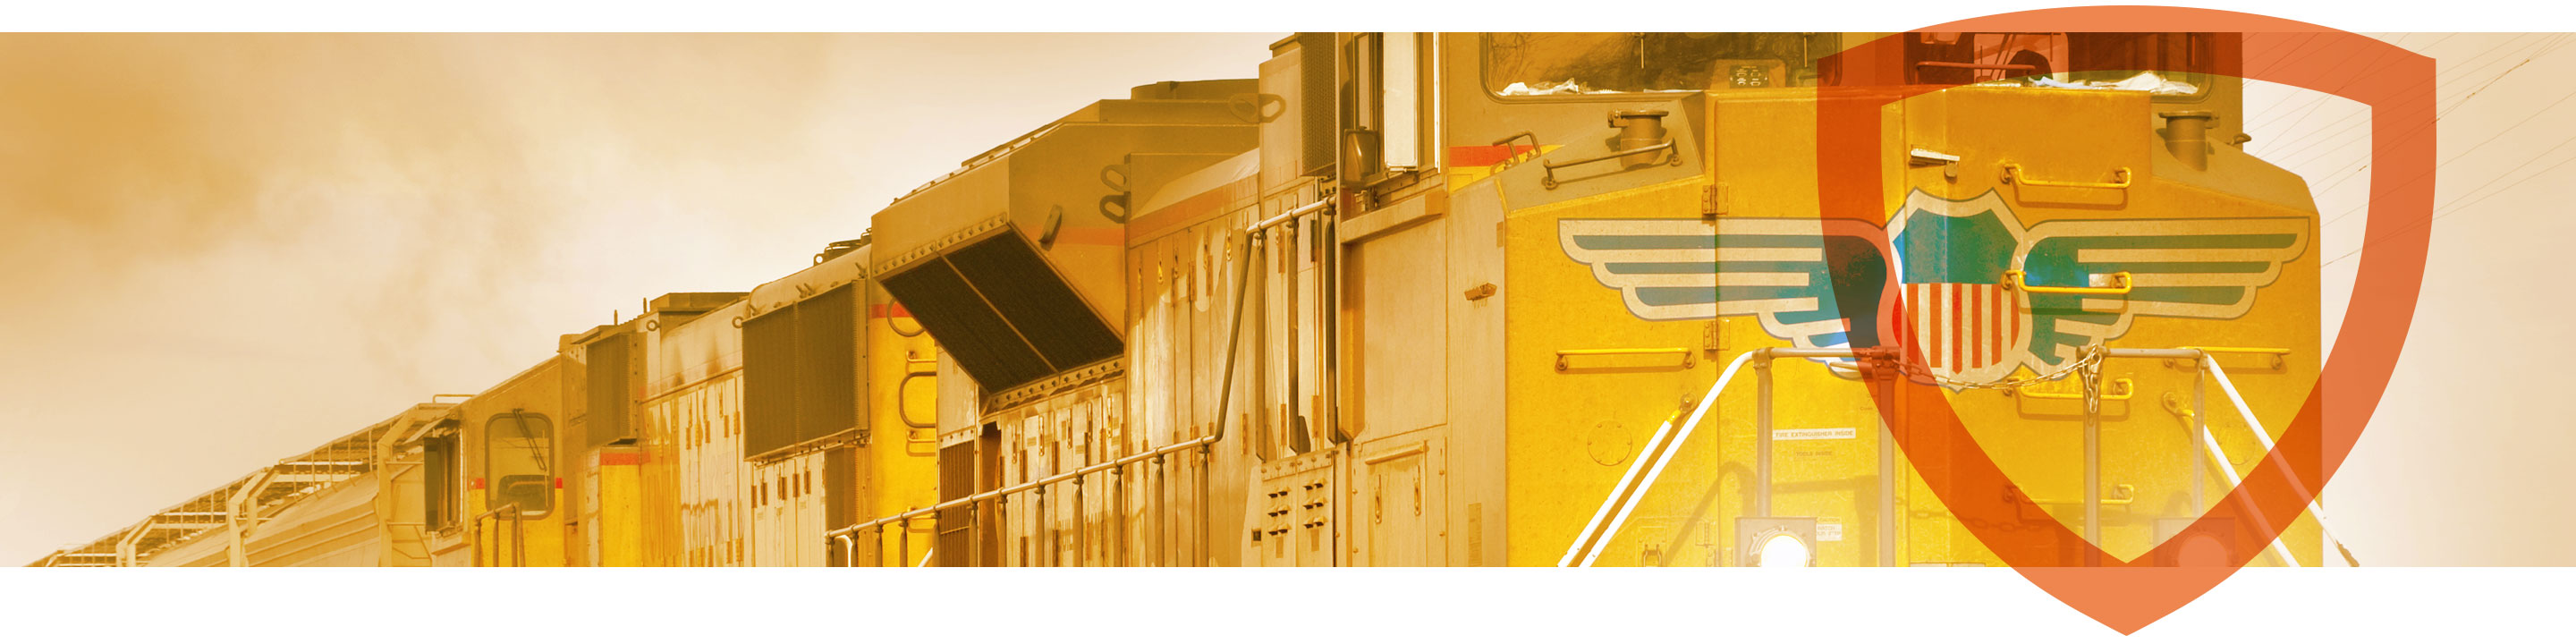 Railroad Lubricants Product Header Image